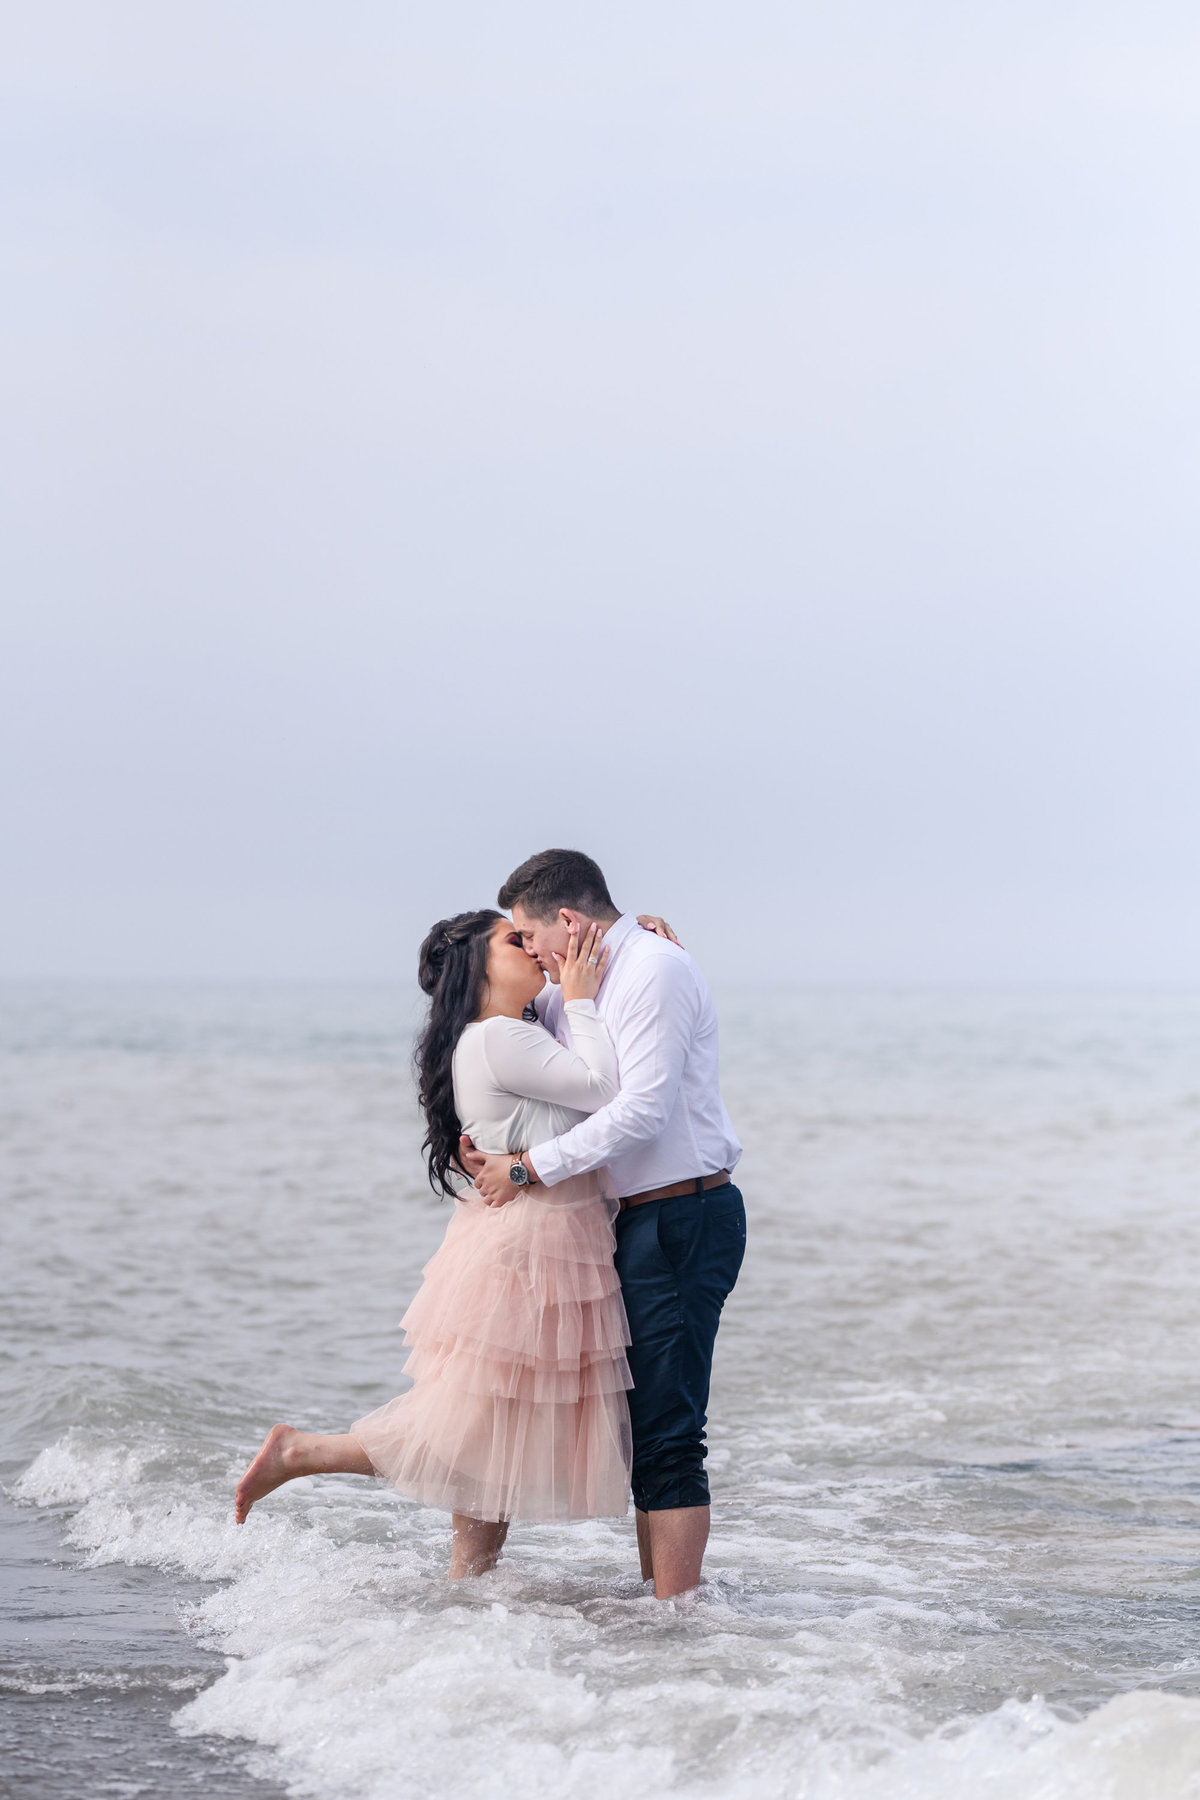 atwater-beach-engagement-milwaukee-the-paper-elephant-029